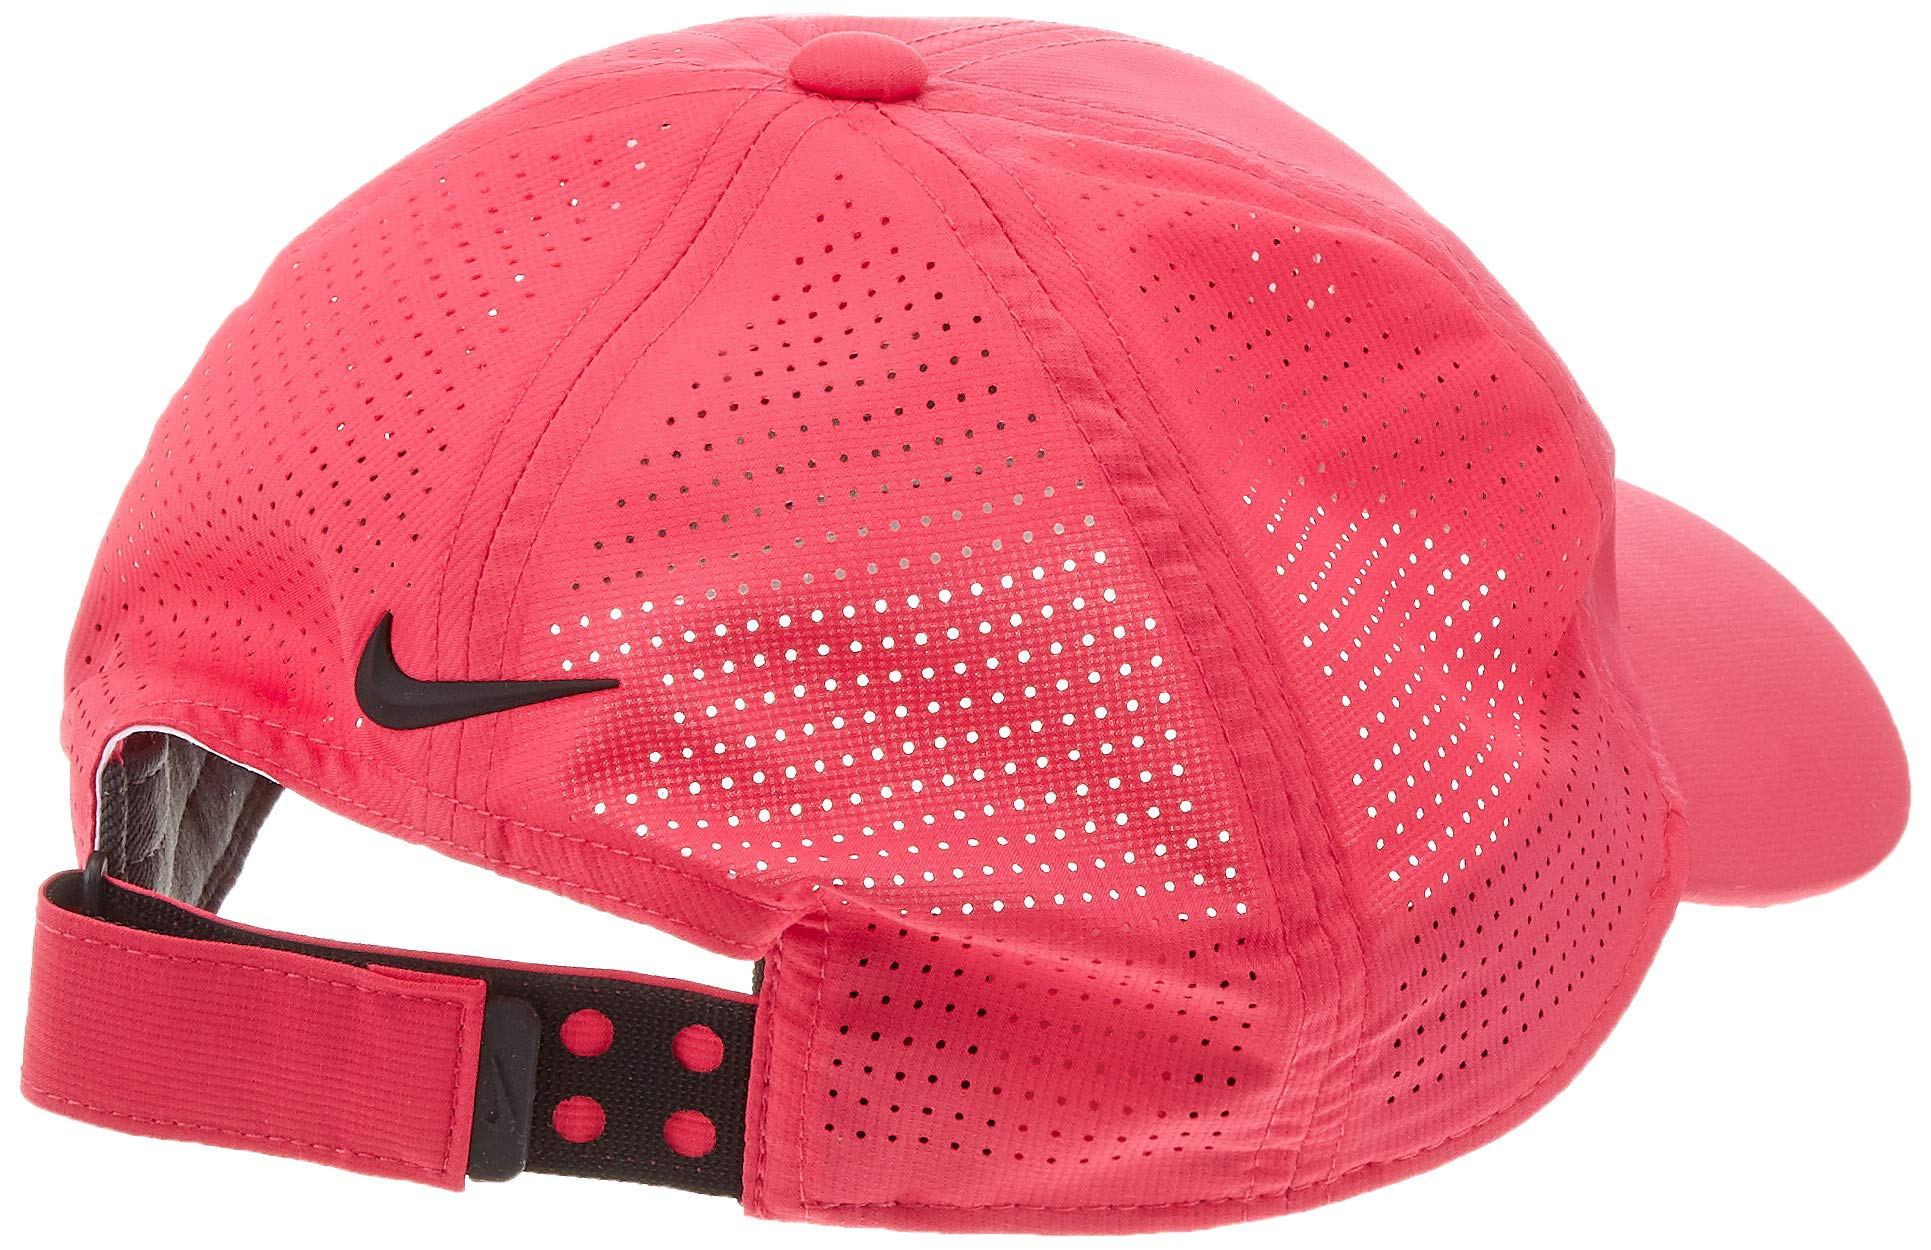 NIKE Women s AeroBill Legacy 91 Perforated Cap - 892721-686-Miscellaneous-P    Baseball Caps   Clothing b806ccead6ac